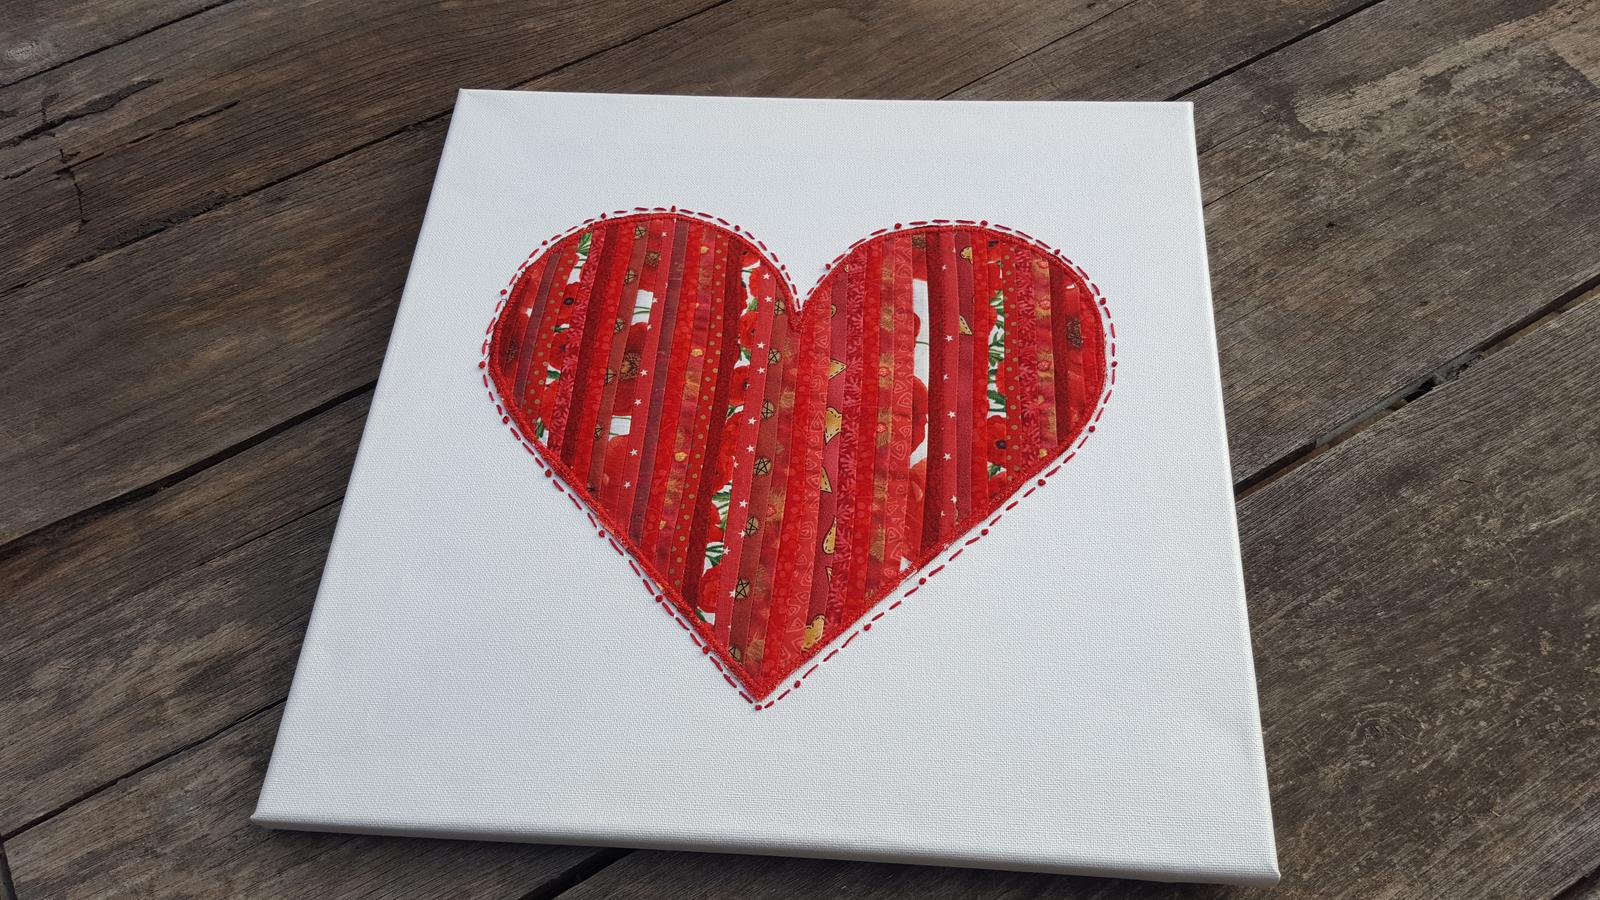 Fabric Heart on Canvas